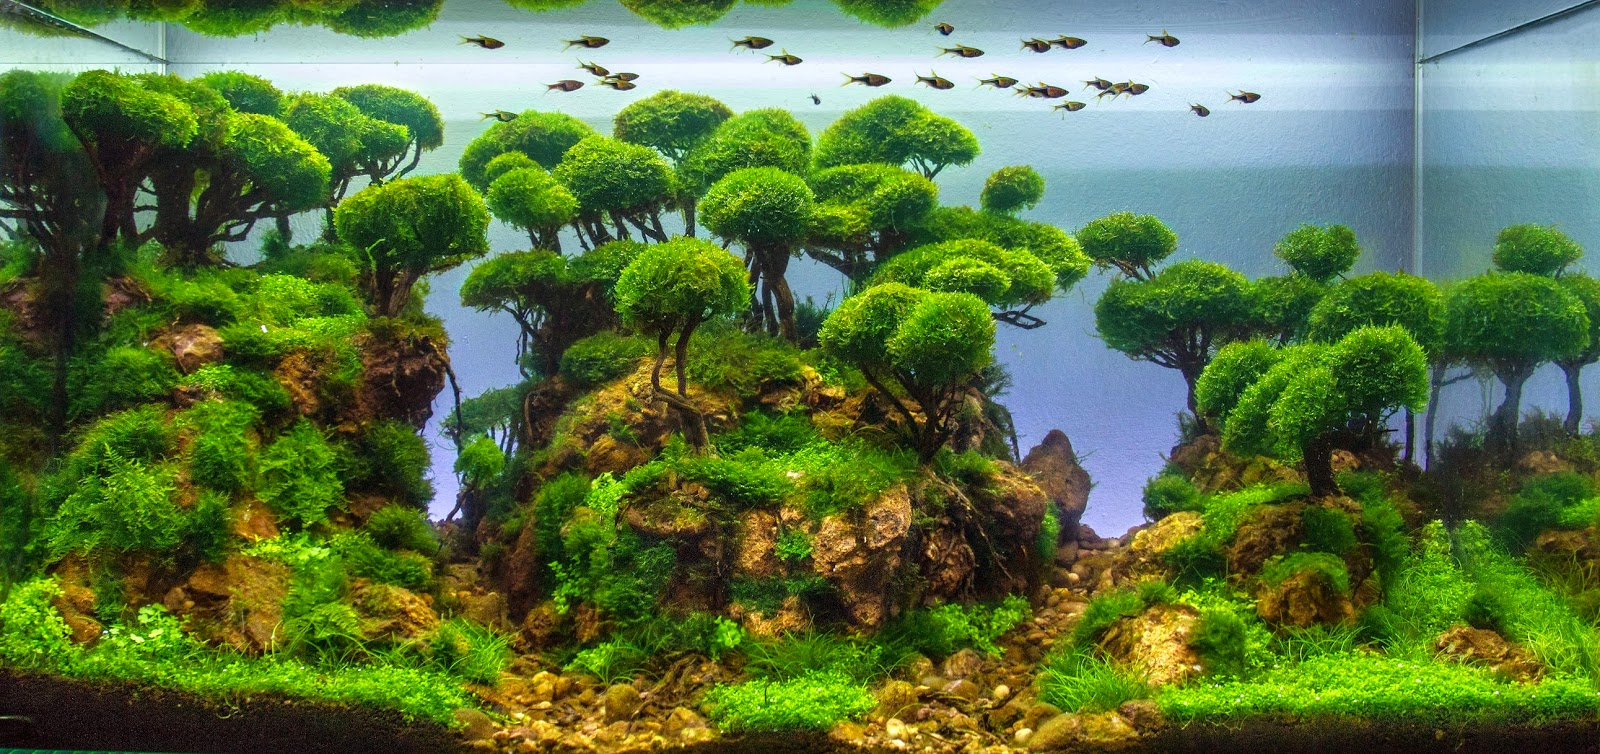 Aquascaping spain la vall seca by bernat hosta - Aquascape espana ...